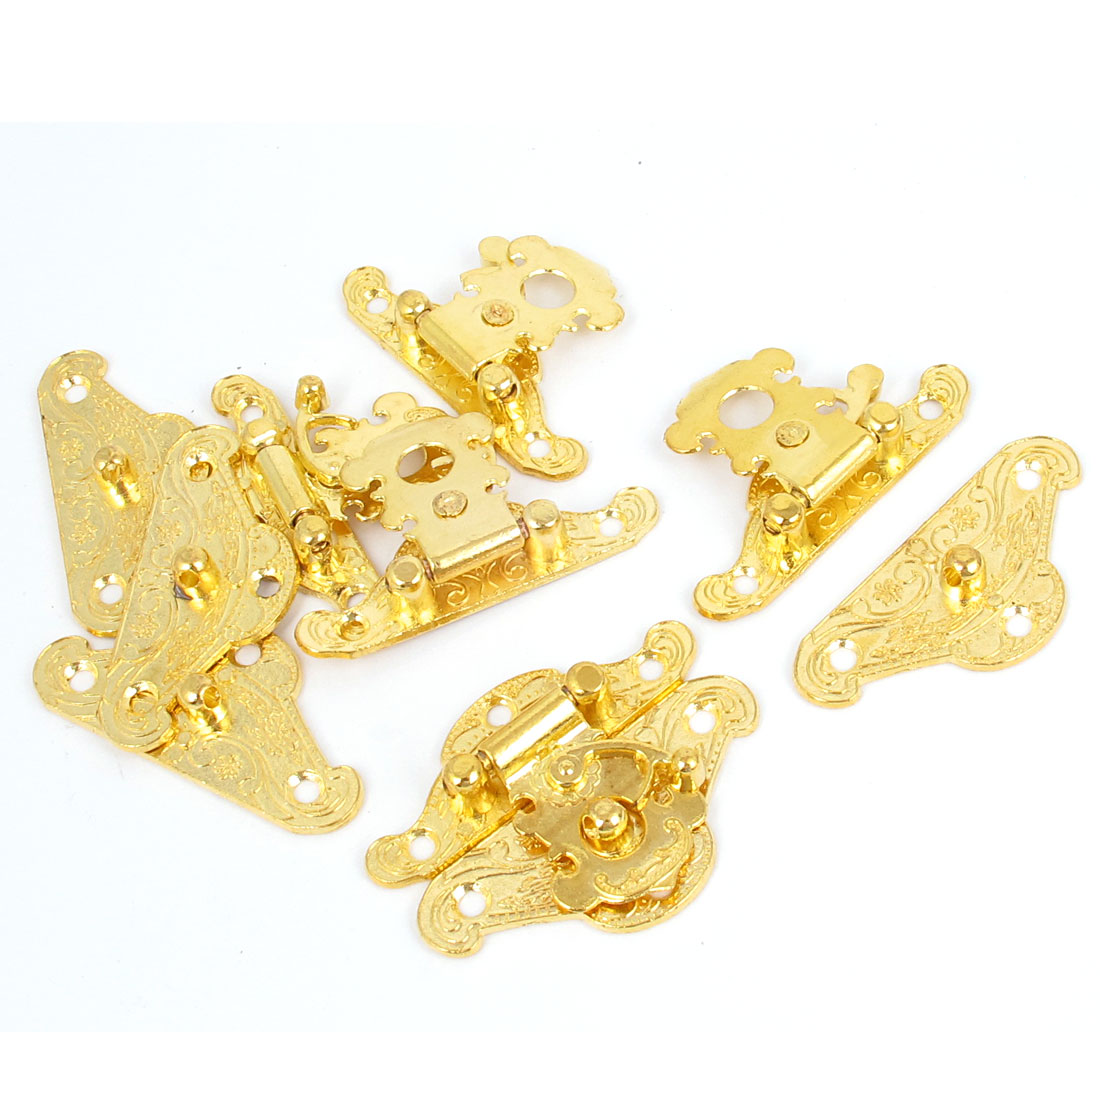 48mmx38mm Alloy Box Drawer Hasp Hook Lock Lid Latch Gold Tone 5pcs